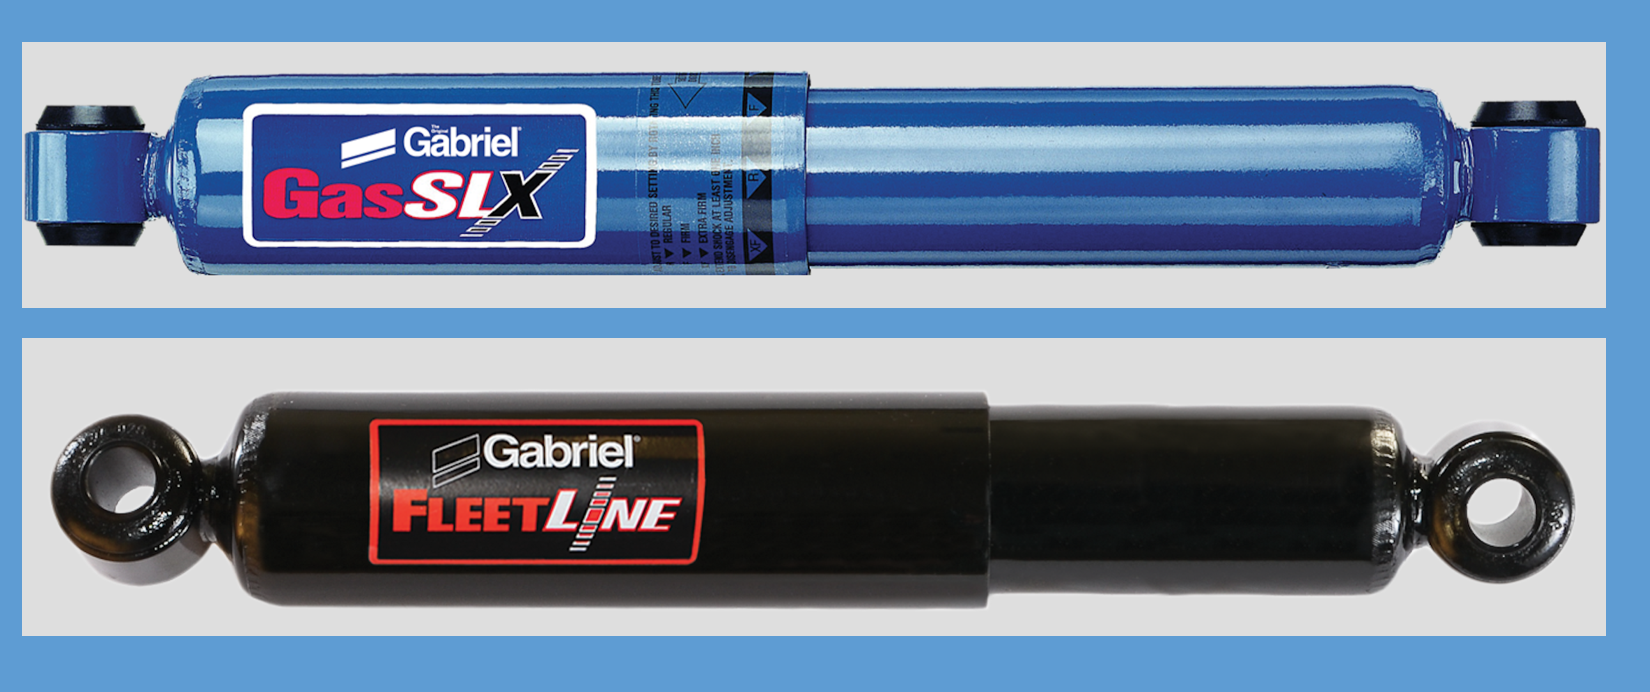 Gabriel® to Debut Advanced in FleetLine® and GasSLX® Shocks at HDAW 2016